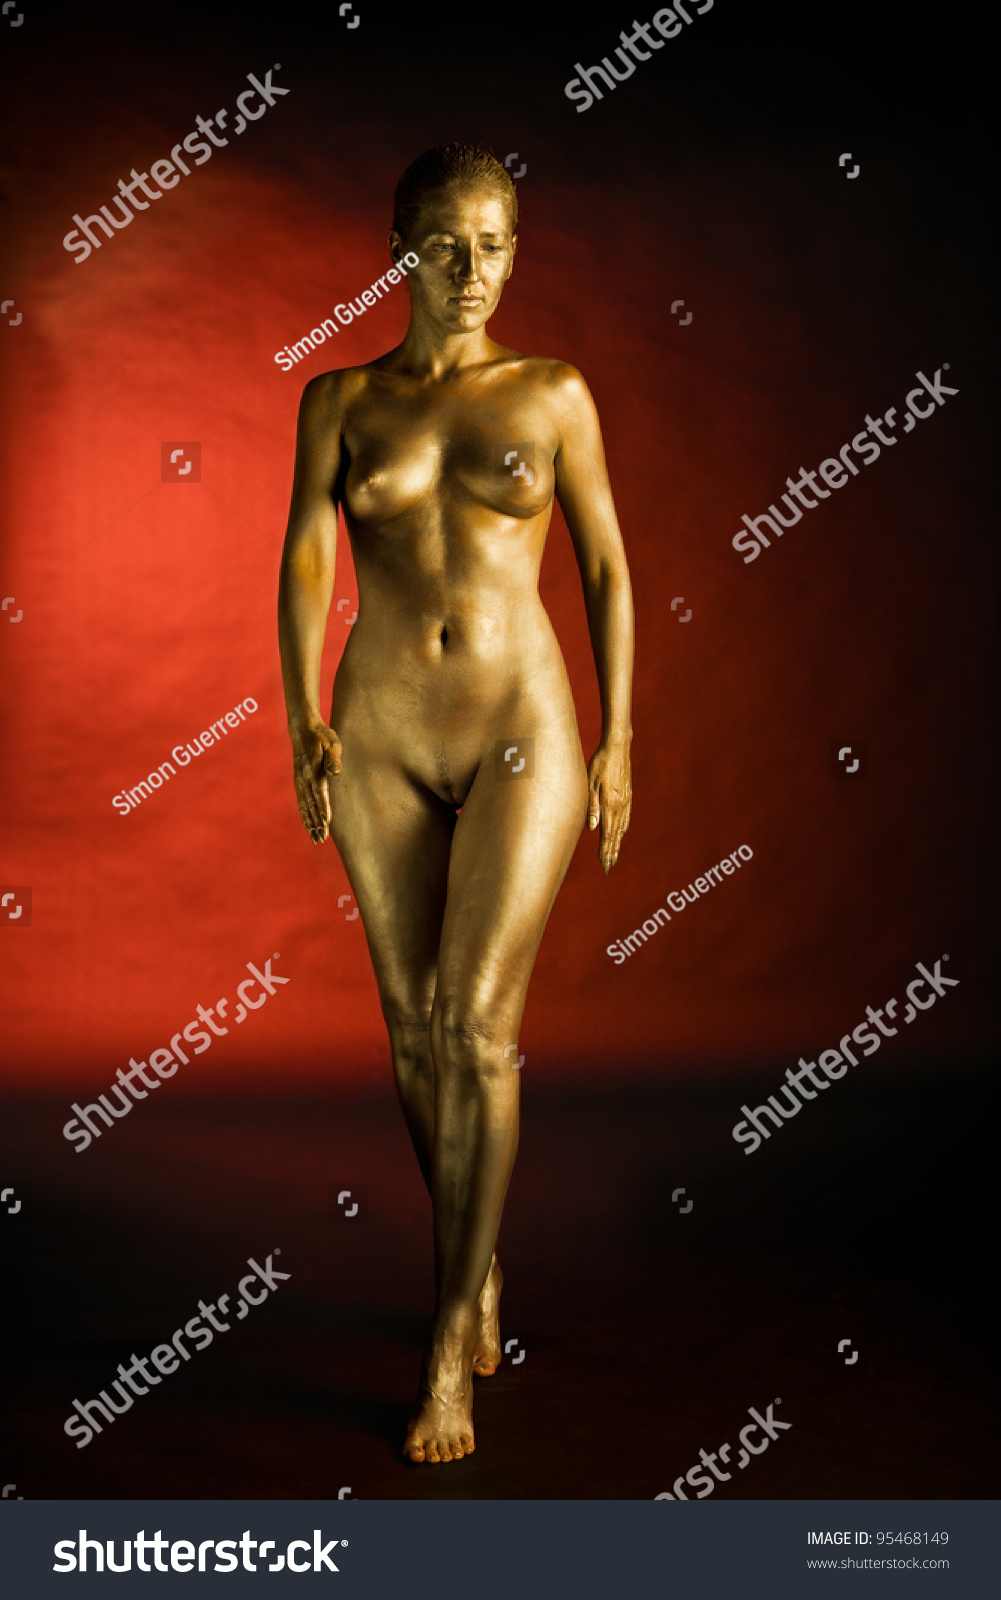 Gold body paint nudes